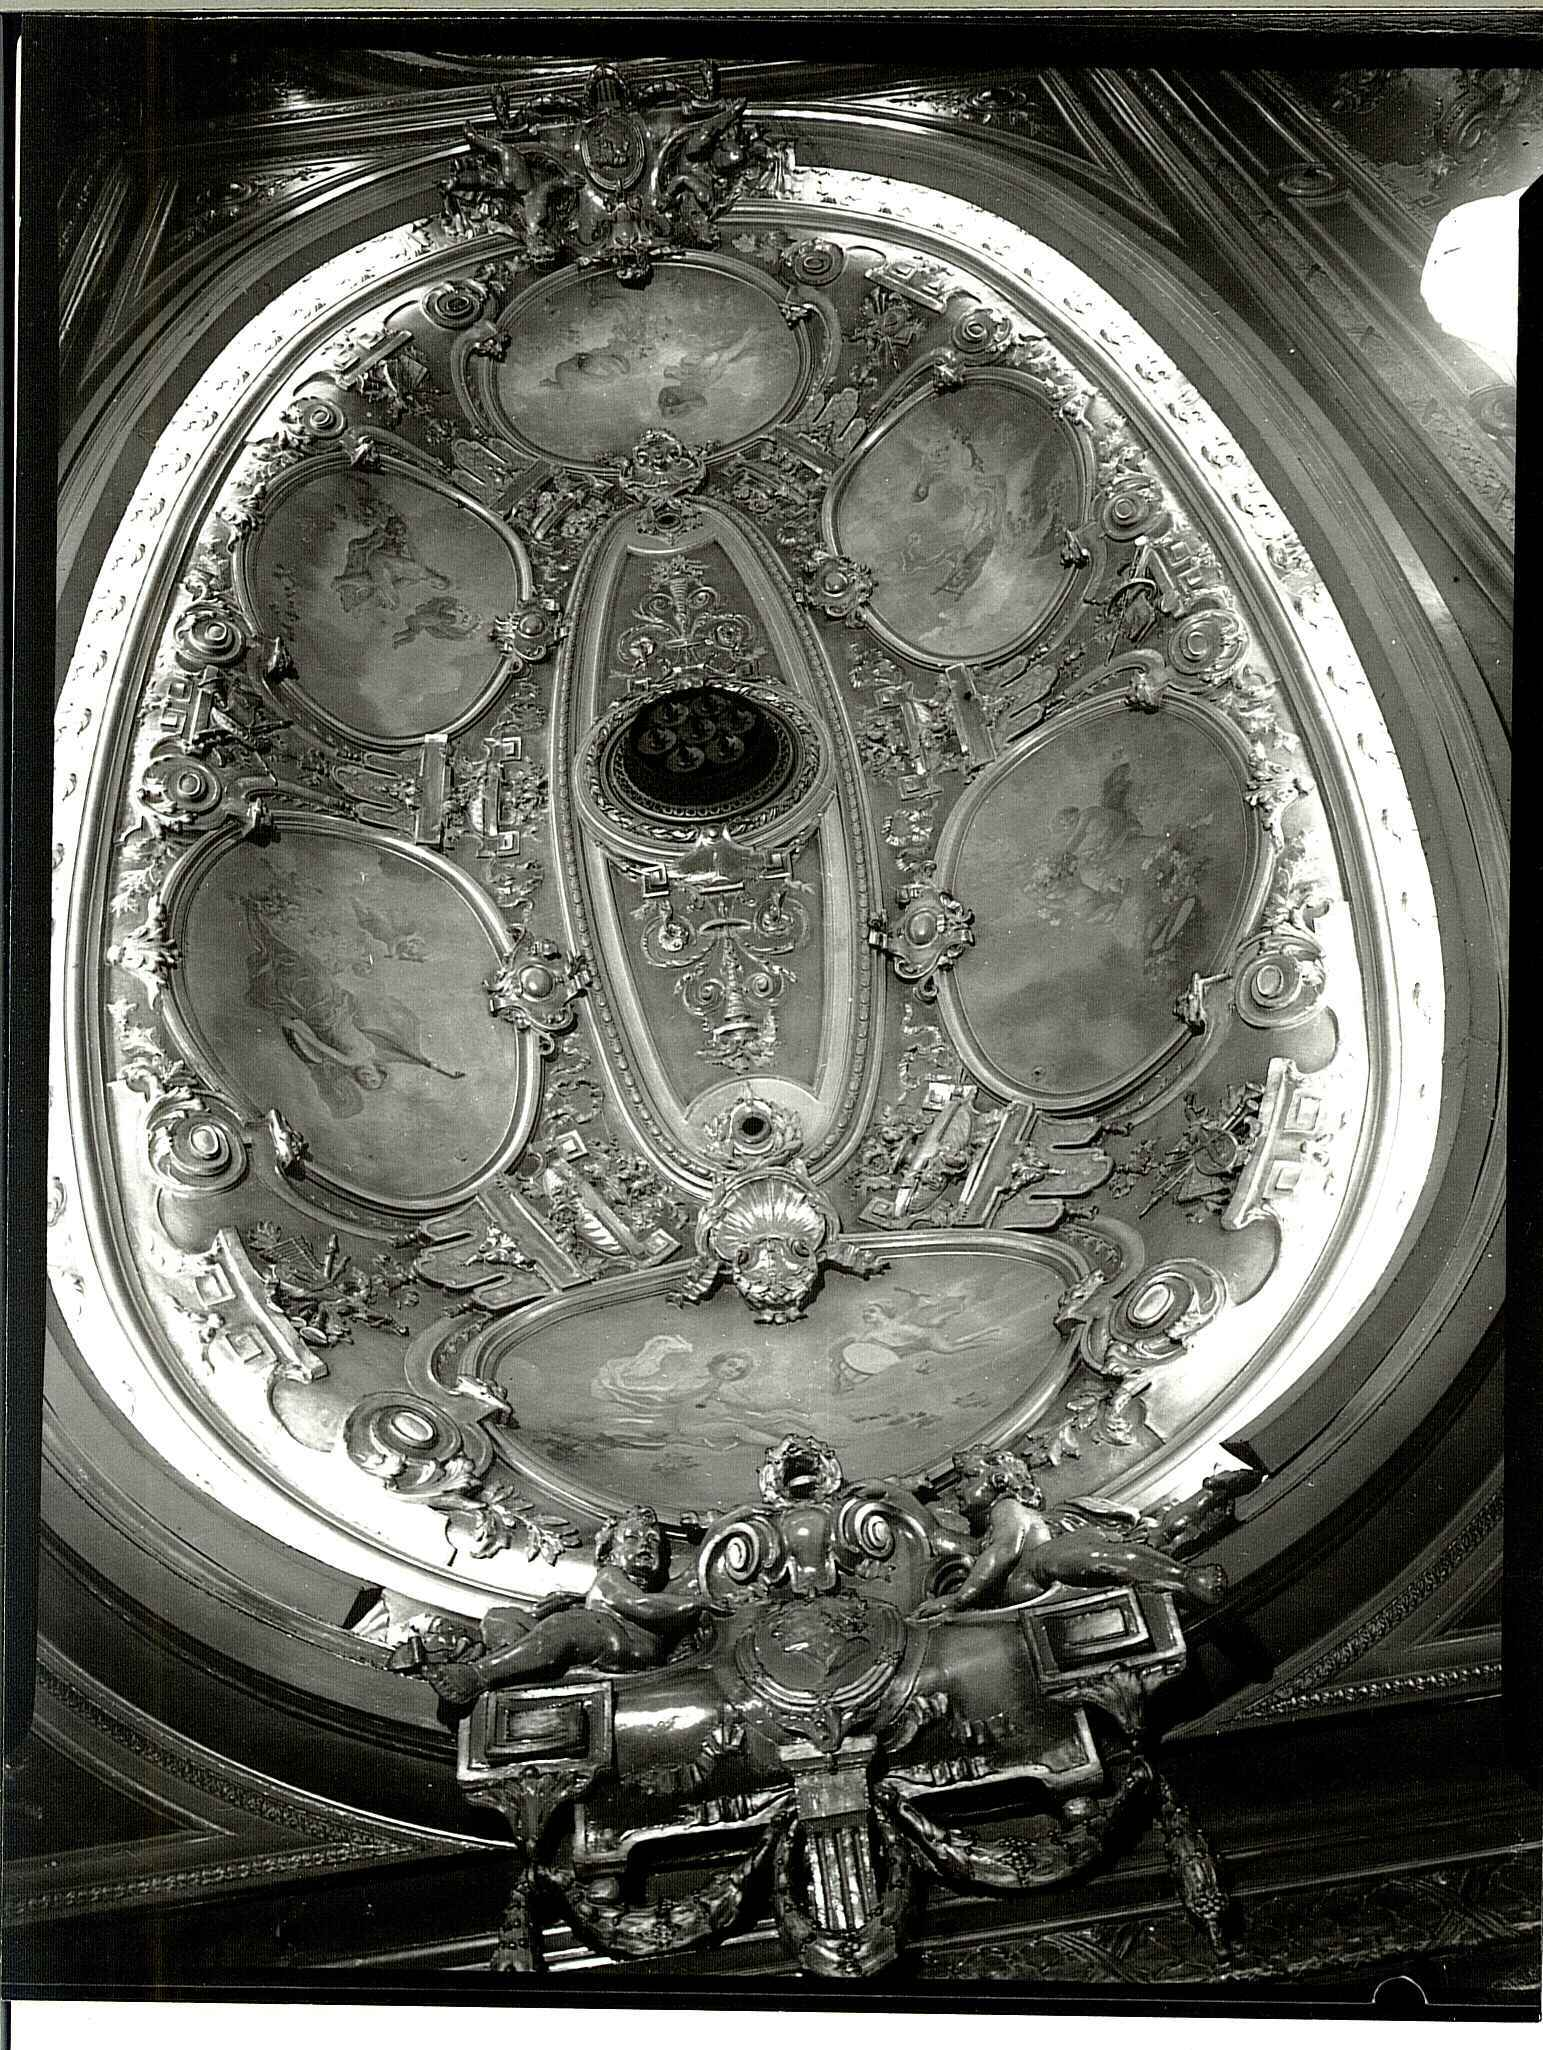 Ceiling of the Opera House, taken for ICI Paints Division, 17th December 1958